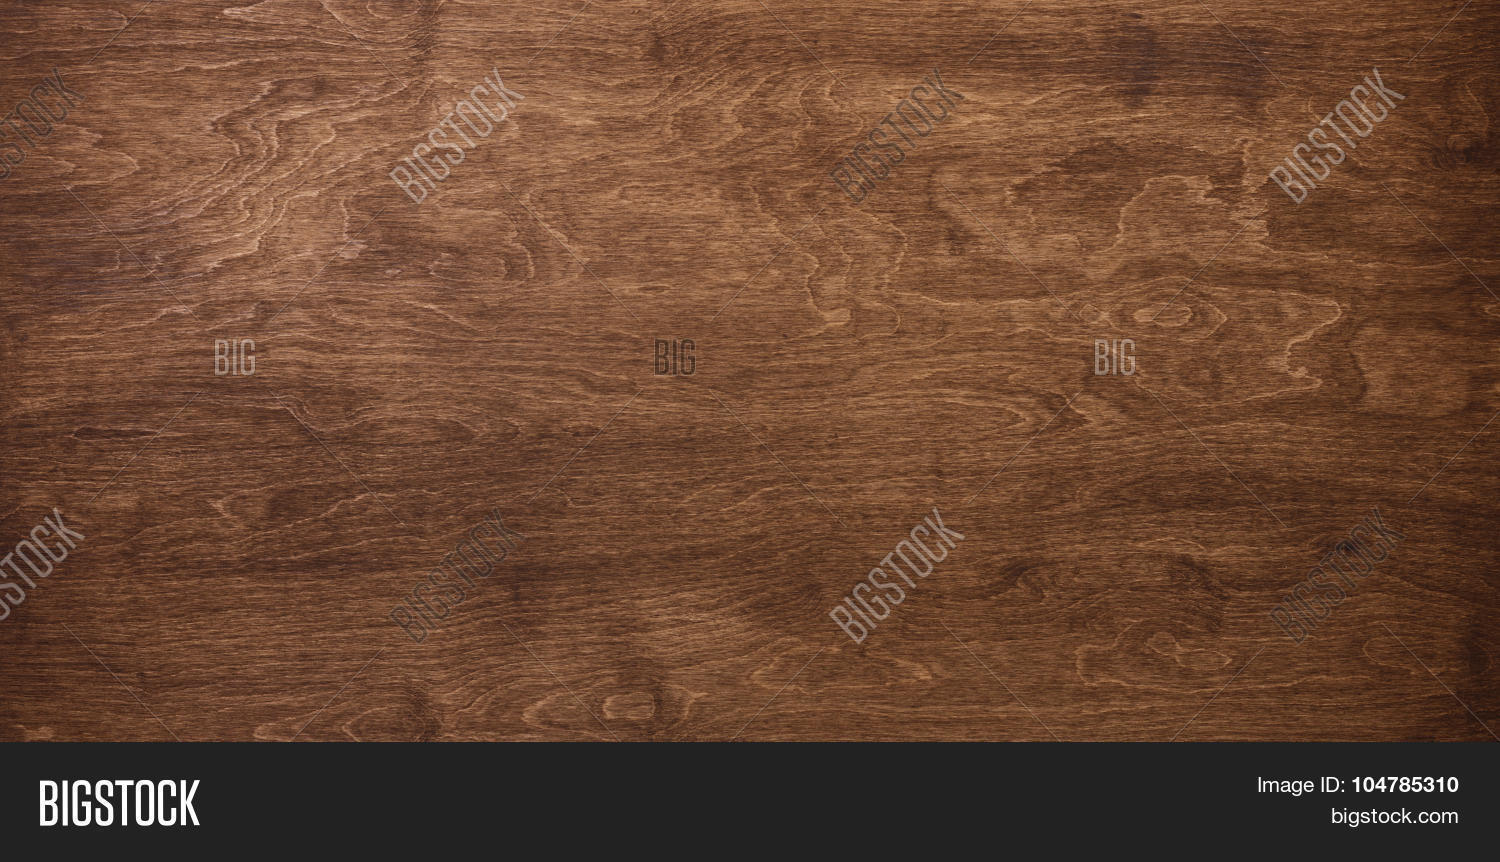 Rustic wood table texture - Rustic Wood Wood Texture Top View Timber Texture Hardwood Wood Grain